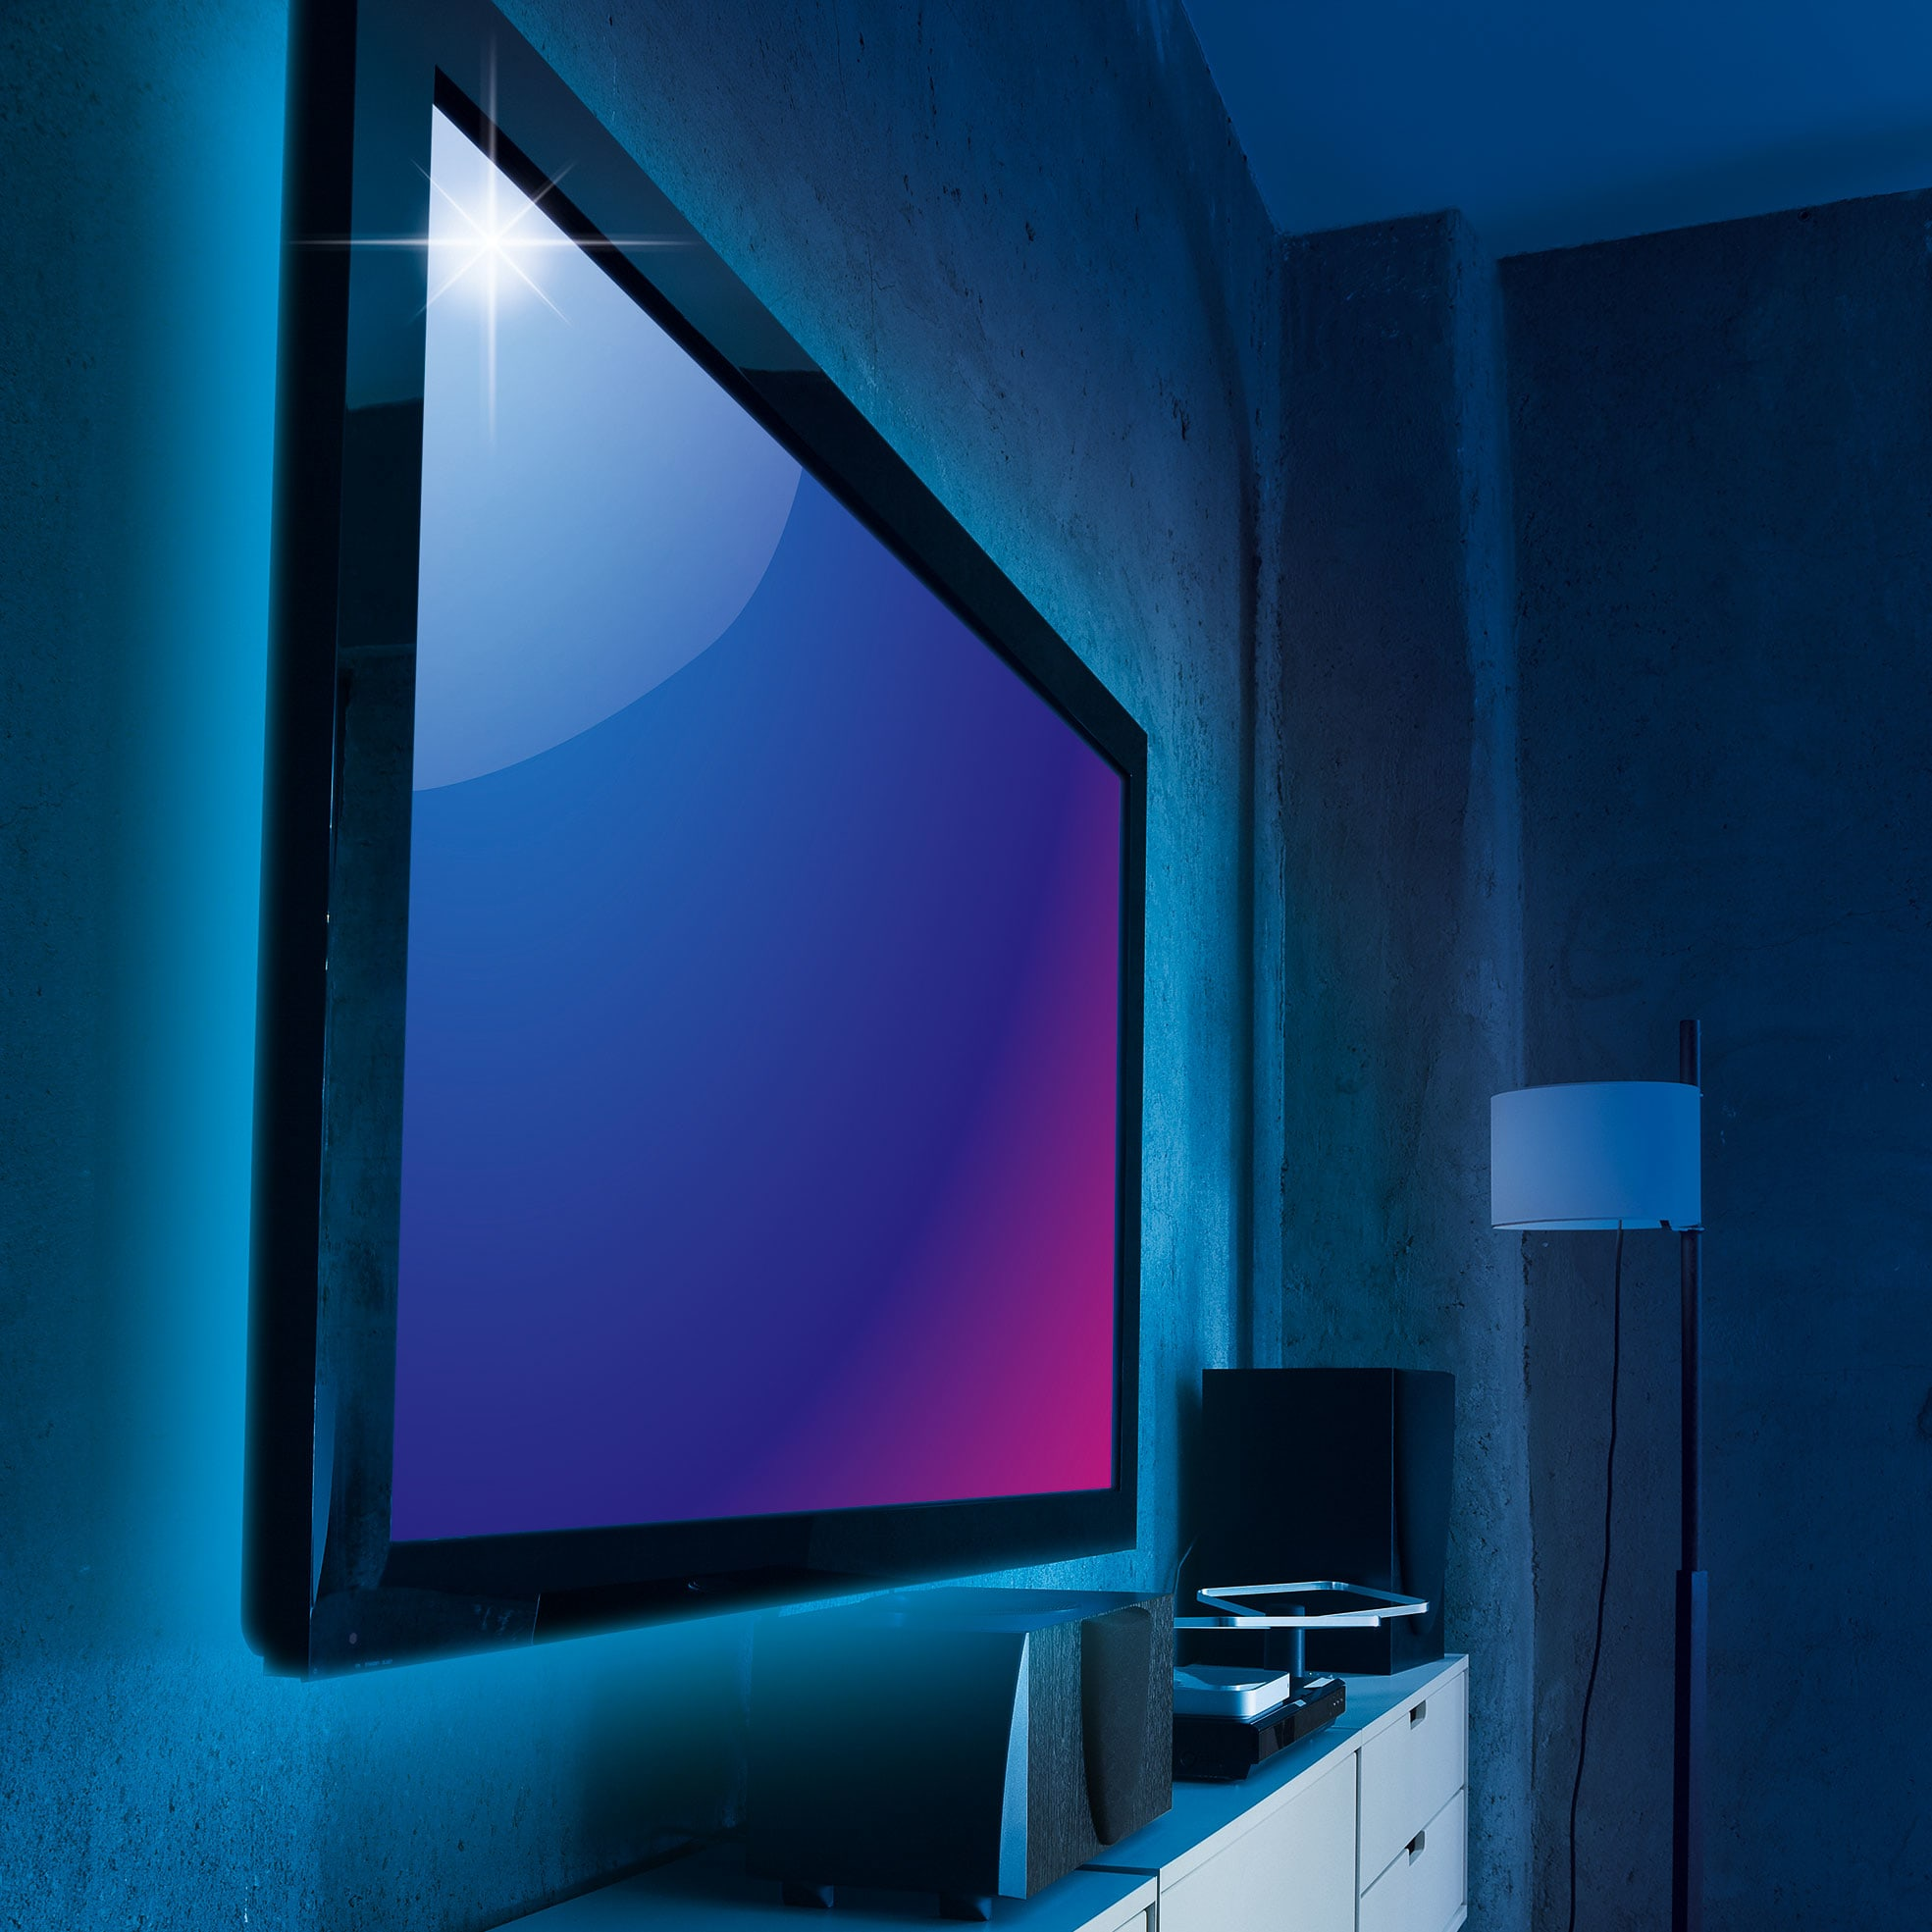 led tv hintergrundbeleuchtung g nstig bei eurotops bestellen. Black Bedroom Furniture Sets. Home Design Ideas